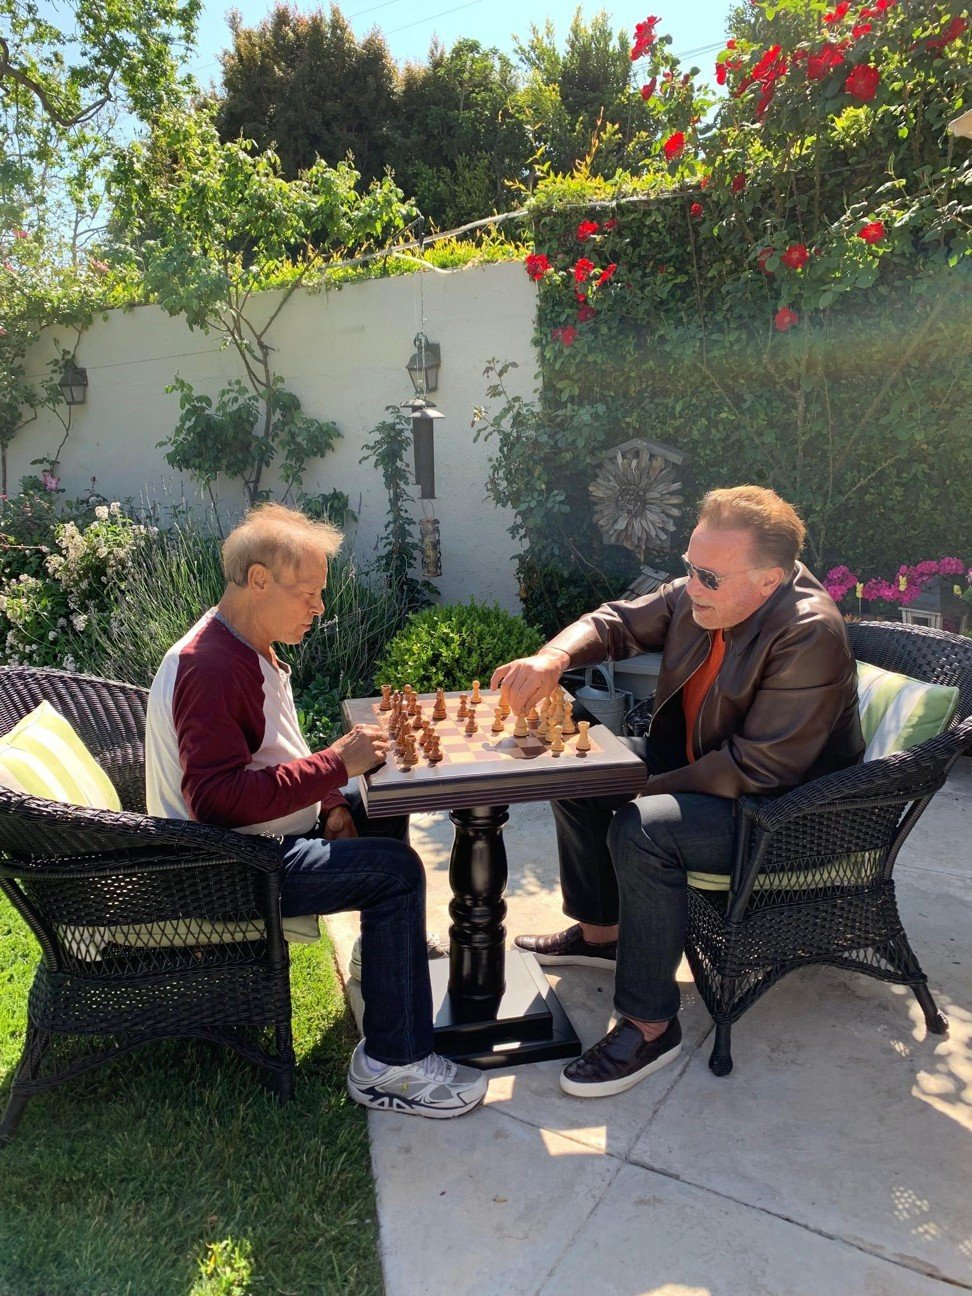 Arnold and Franco play chess. Photo: Instagram